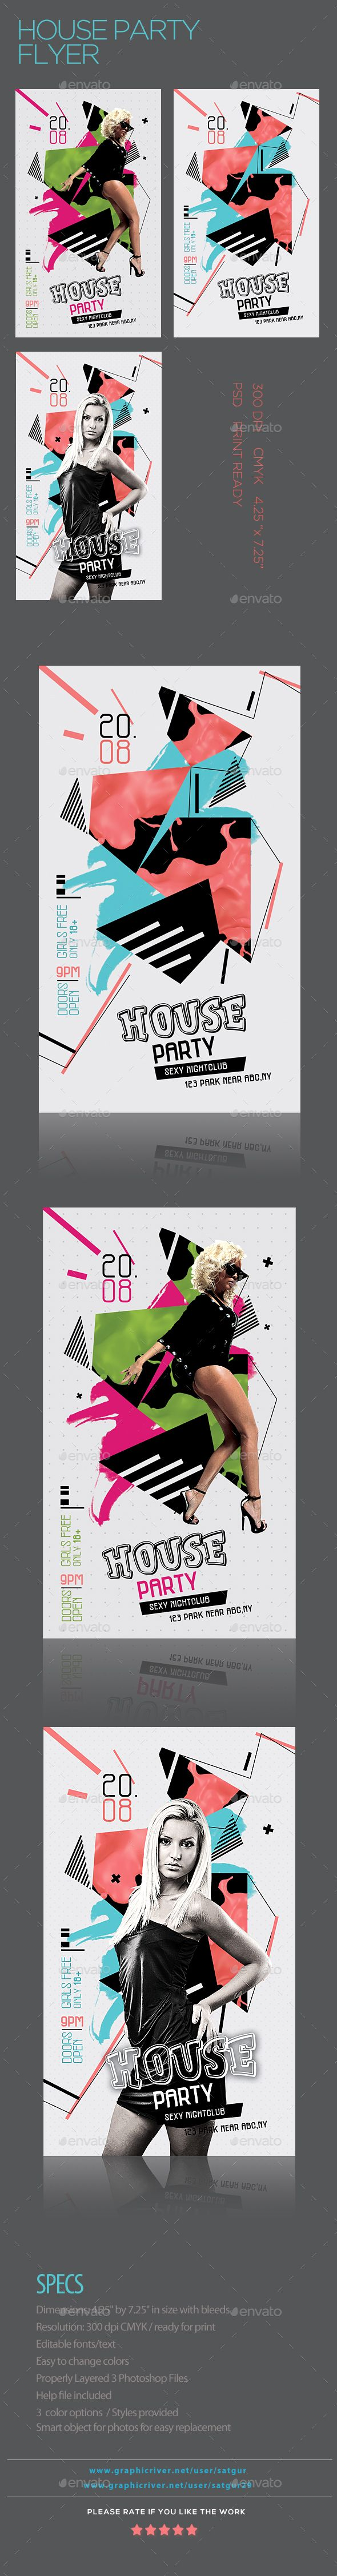 House Party Flyer | Party flyer, Flyer template and Template